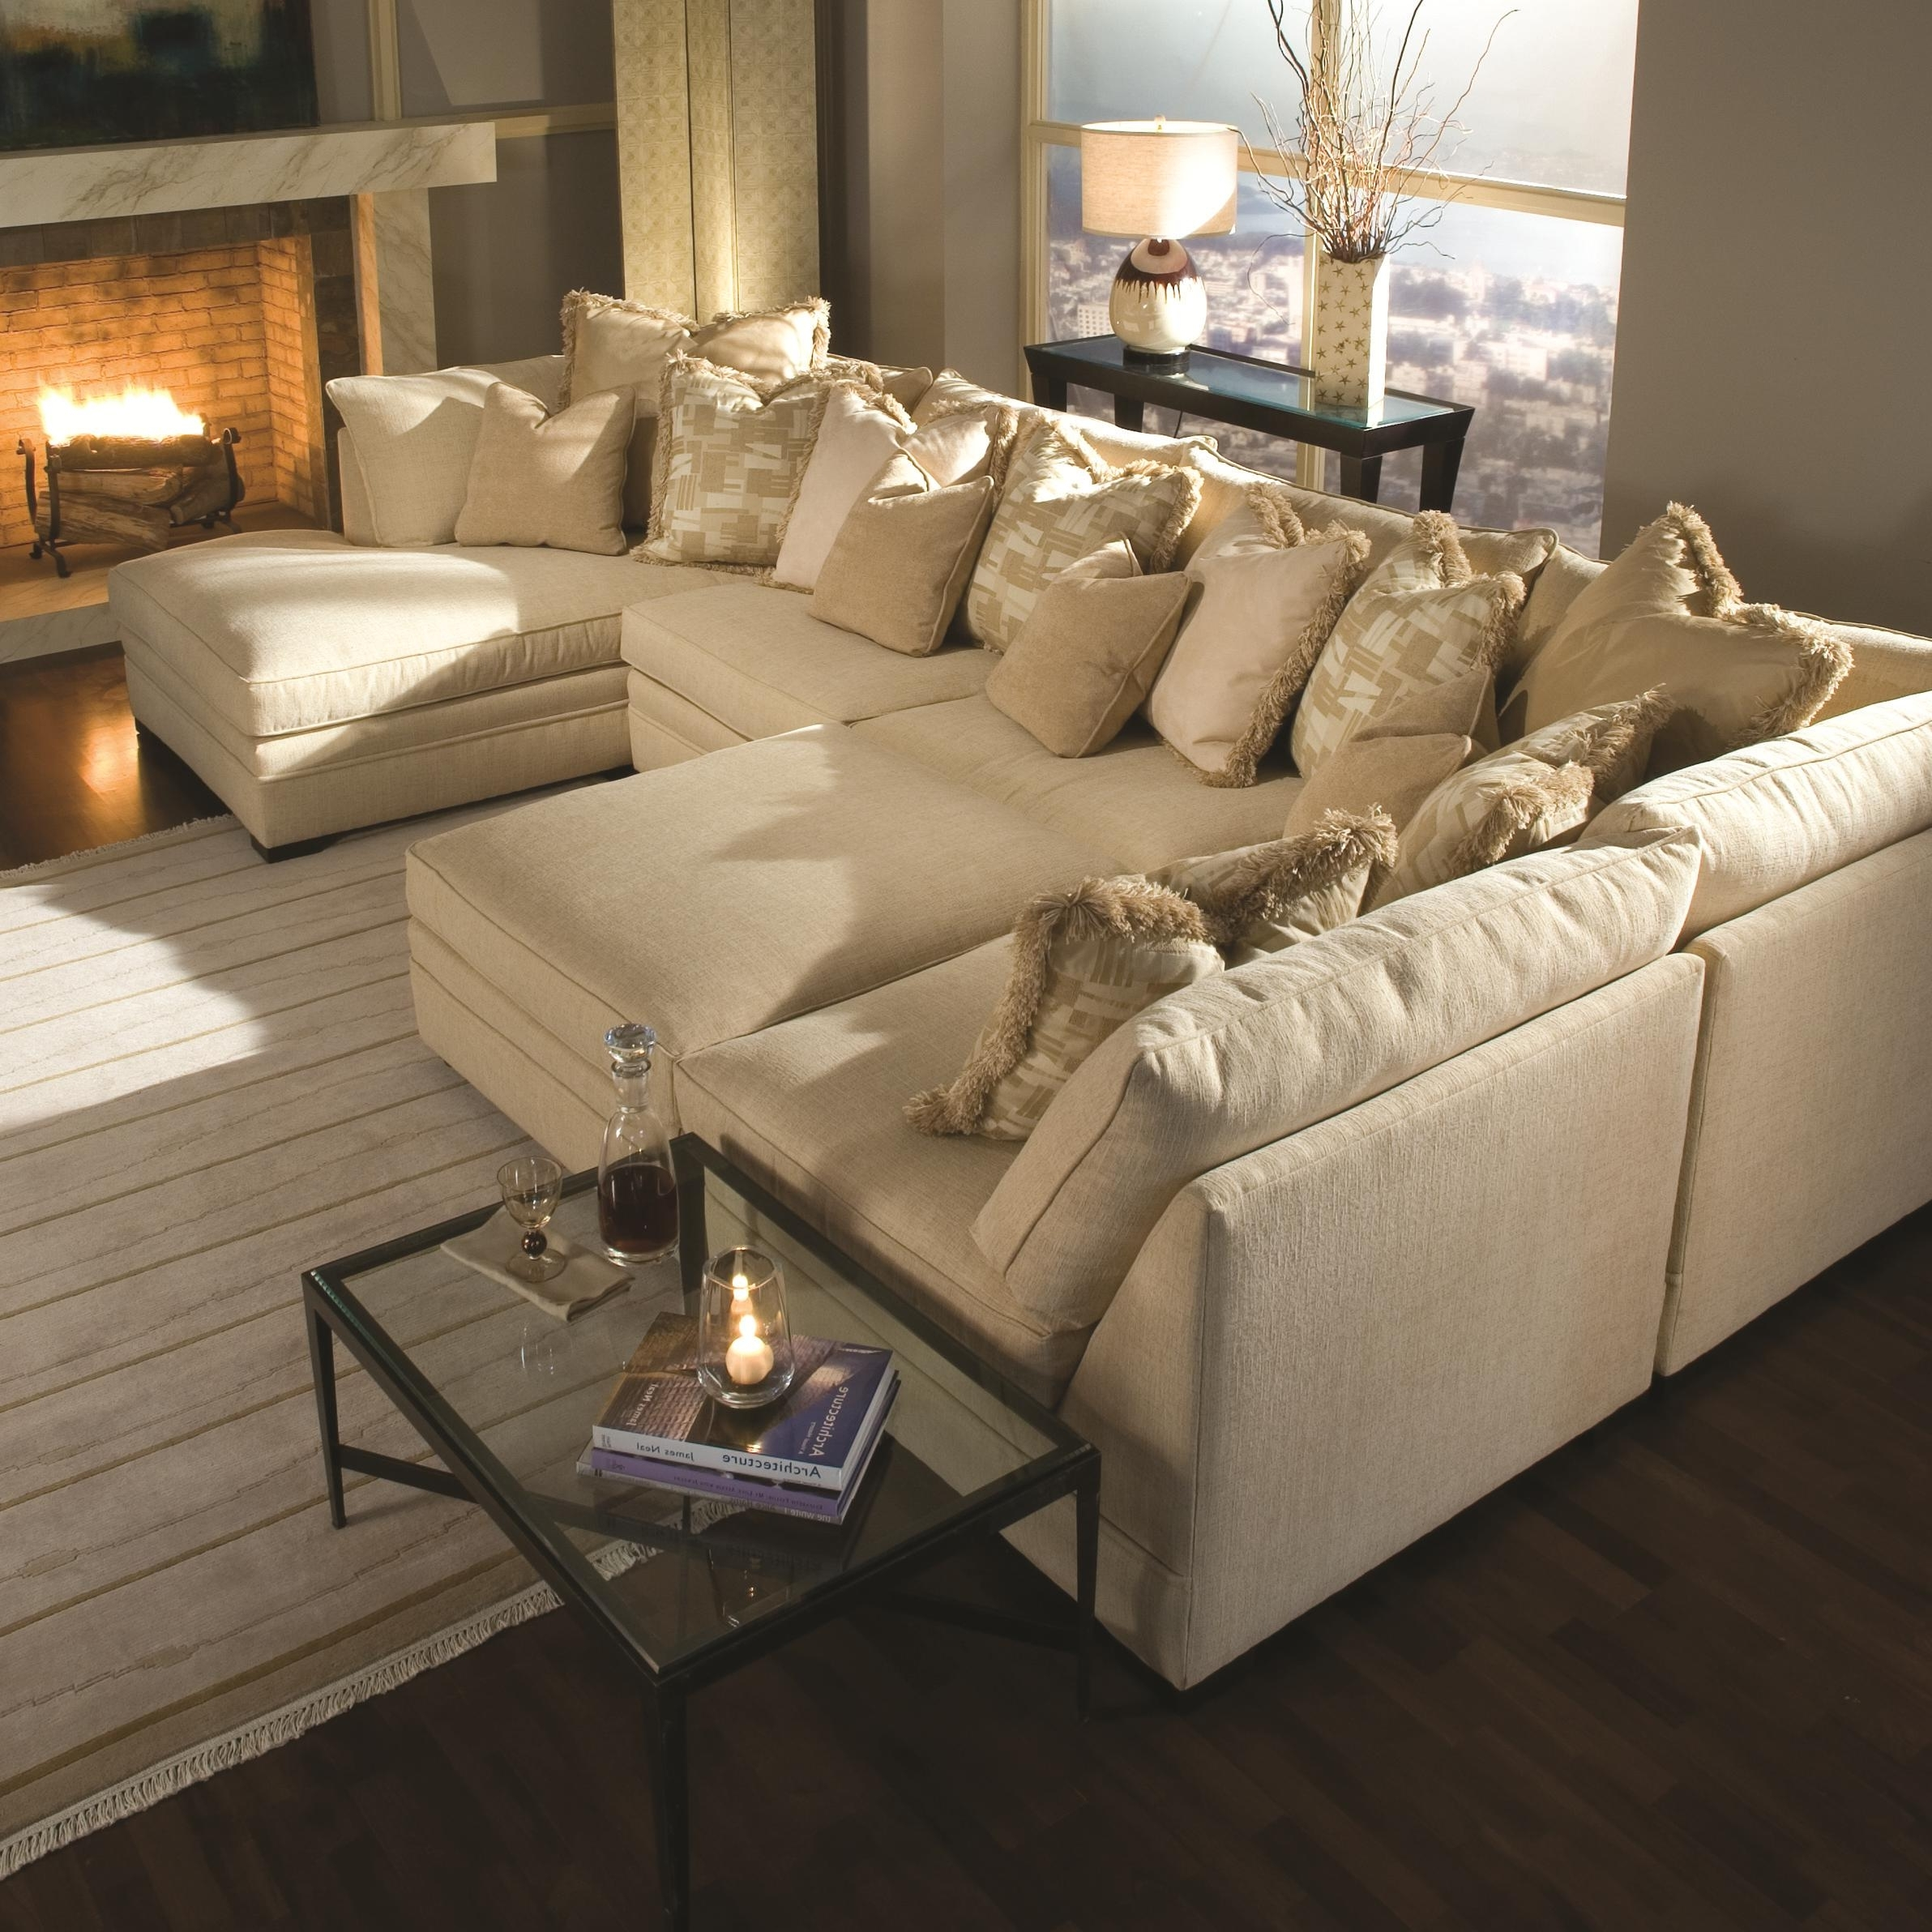 Current Sofa : Beautiful Large Sectional Sofa With Chaise L Shaped Cream Within Sectional Sofas With Chaise And Ottoman (View 7 of 15)